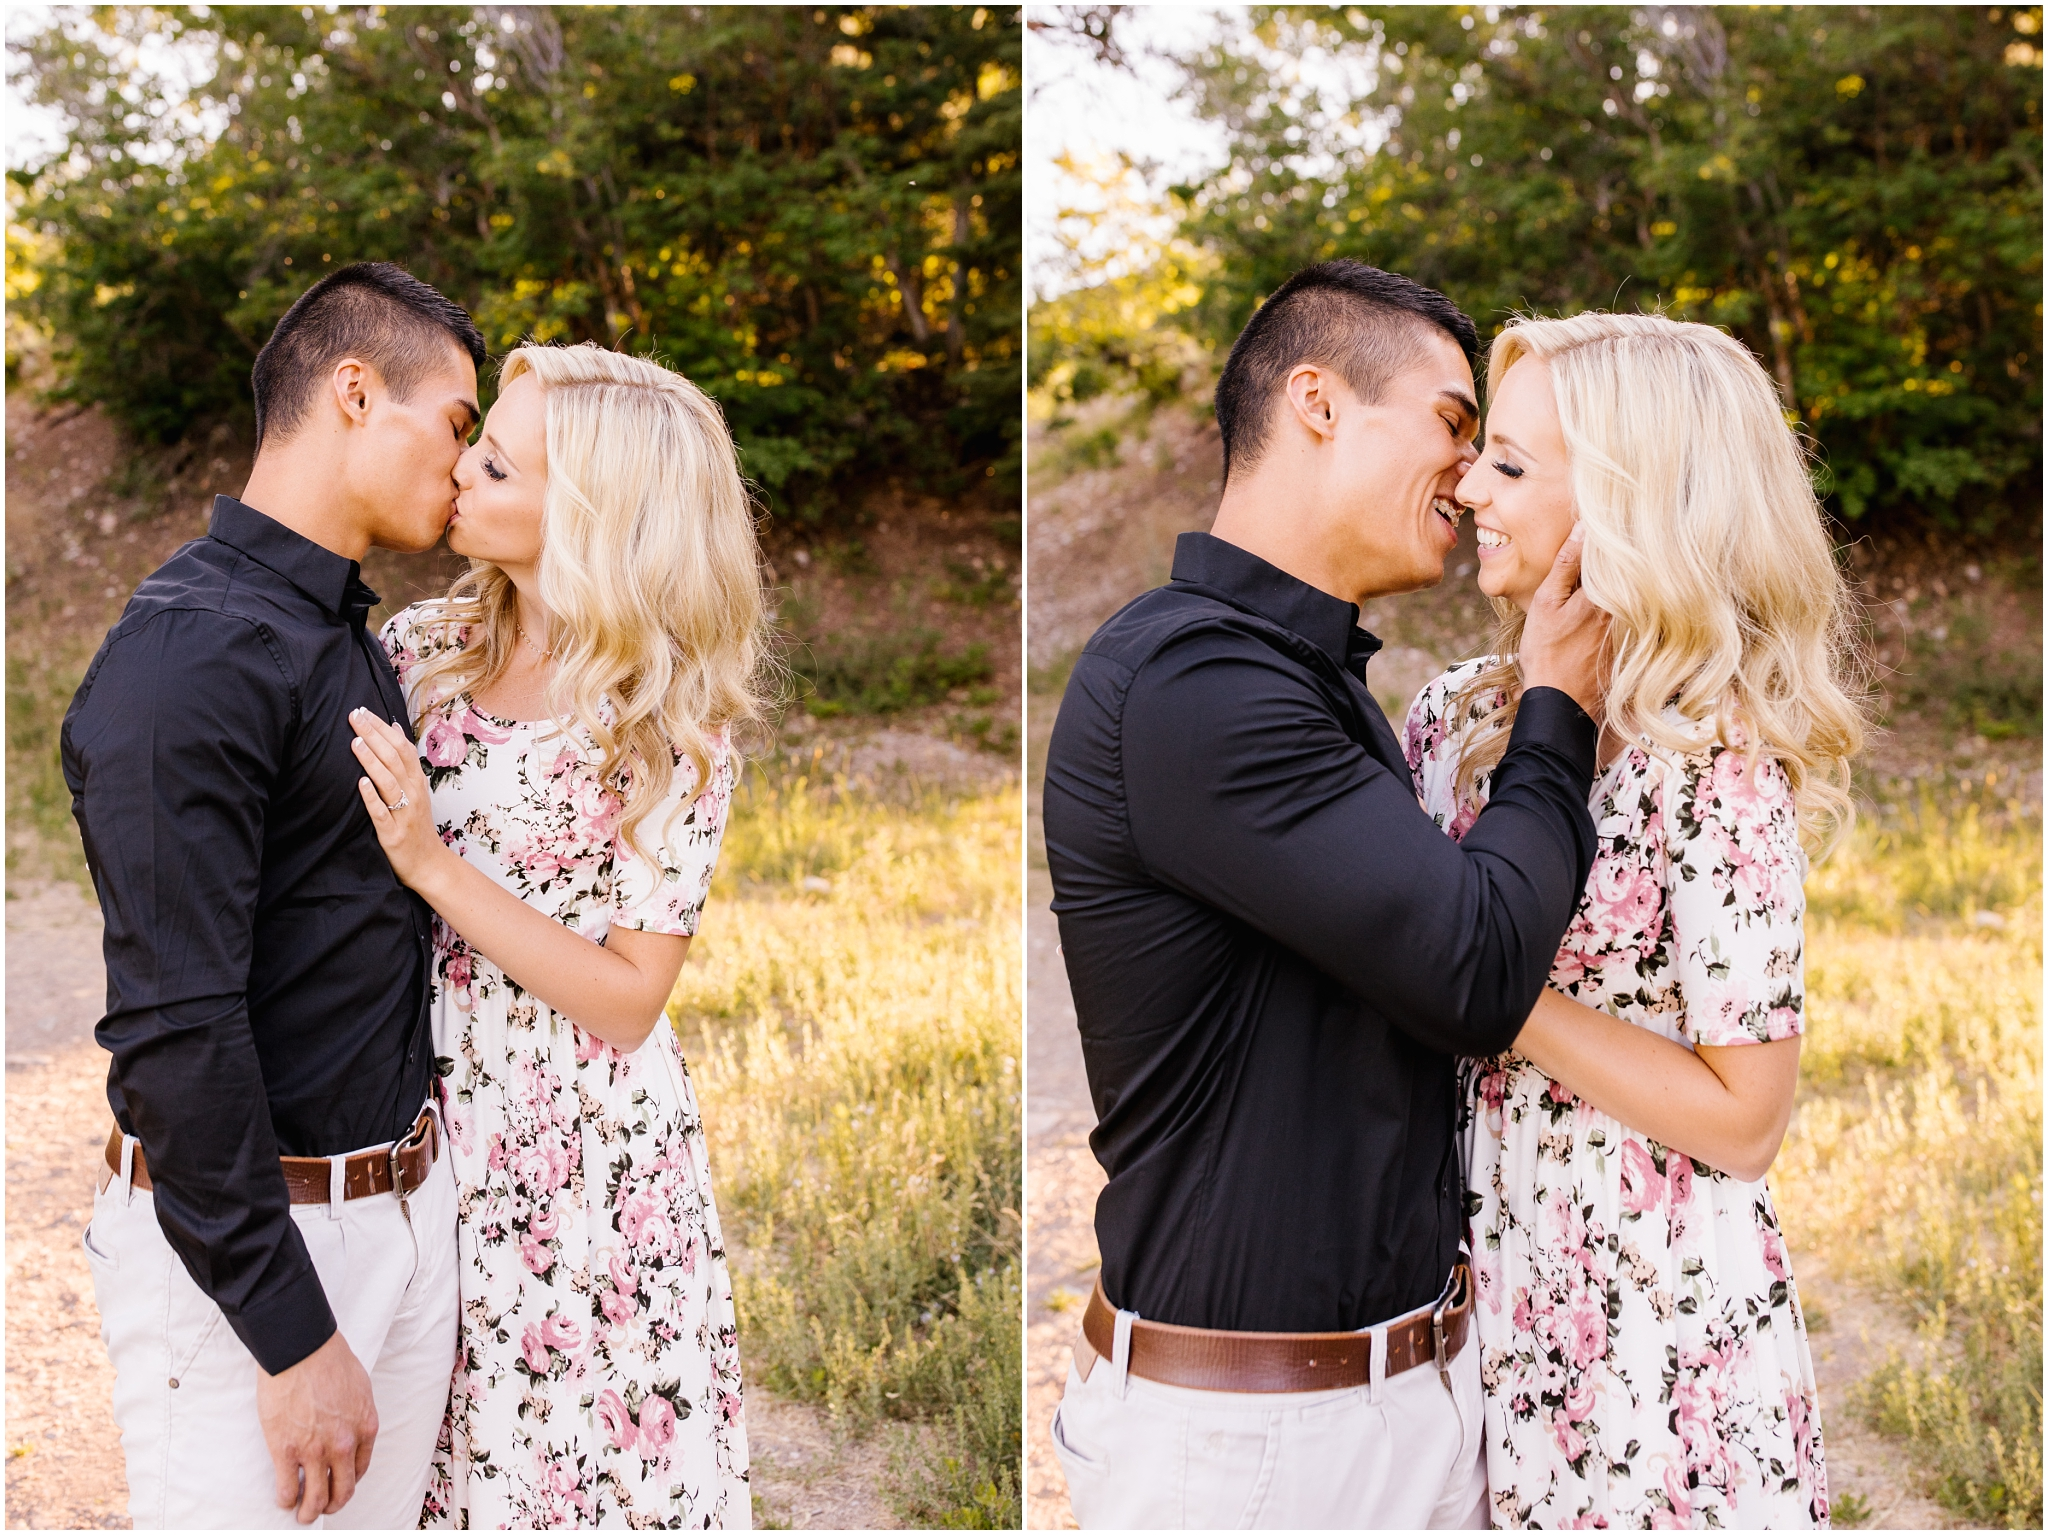 HCengagements-35_Lizzie-B-Imagery-Utah-Wedding-Photographer-Central-Utah-Park-City-Salt-Lake-City-Payson-Canyon-Engagement-Session.jpg